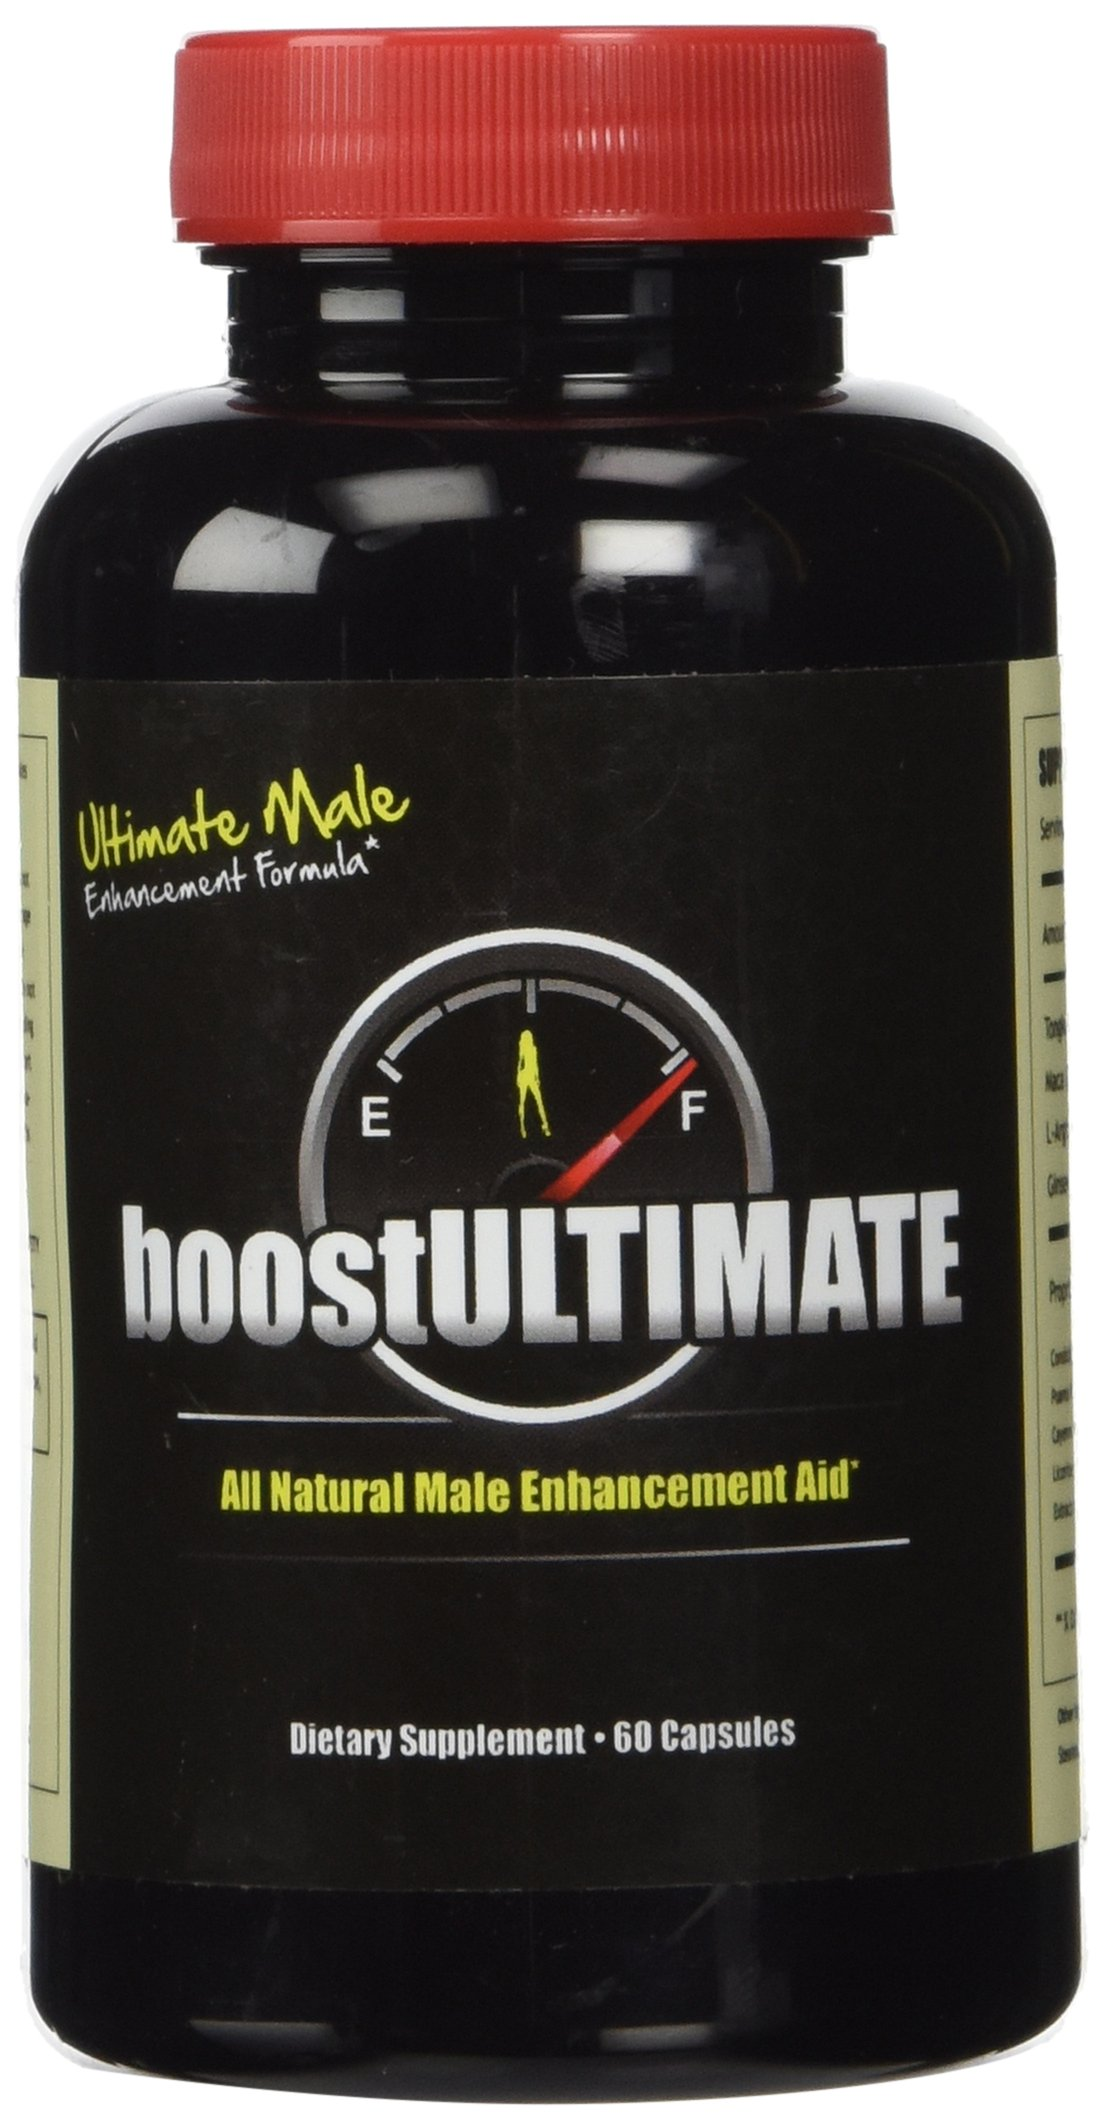 Buy Herbal T Natural Testosterone Booster: Increase Energy Endurance and Libido. Male